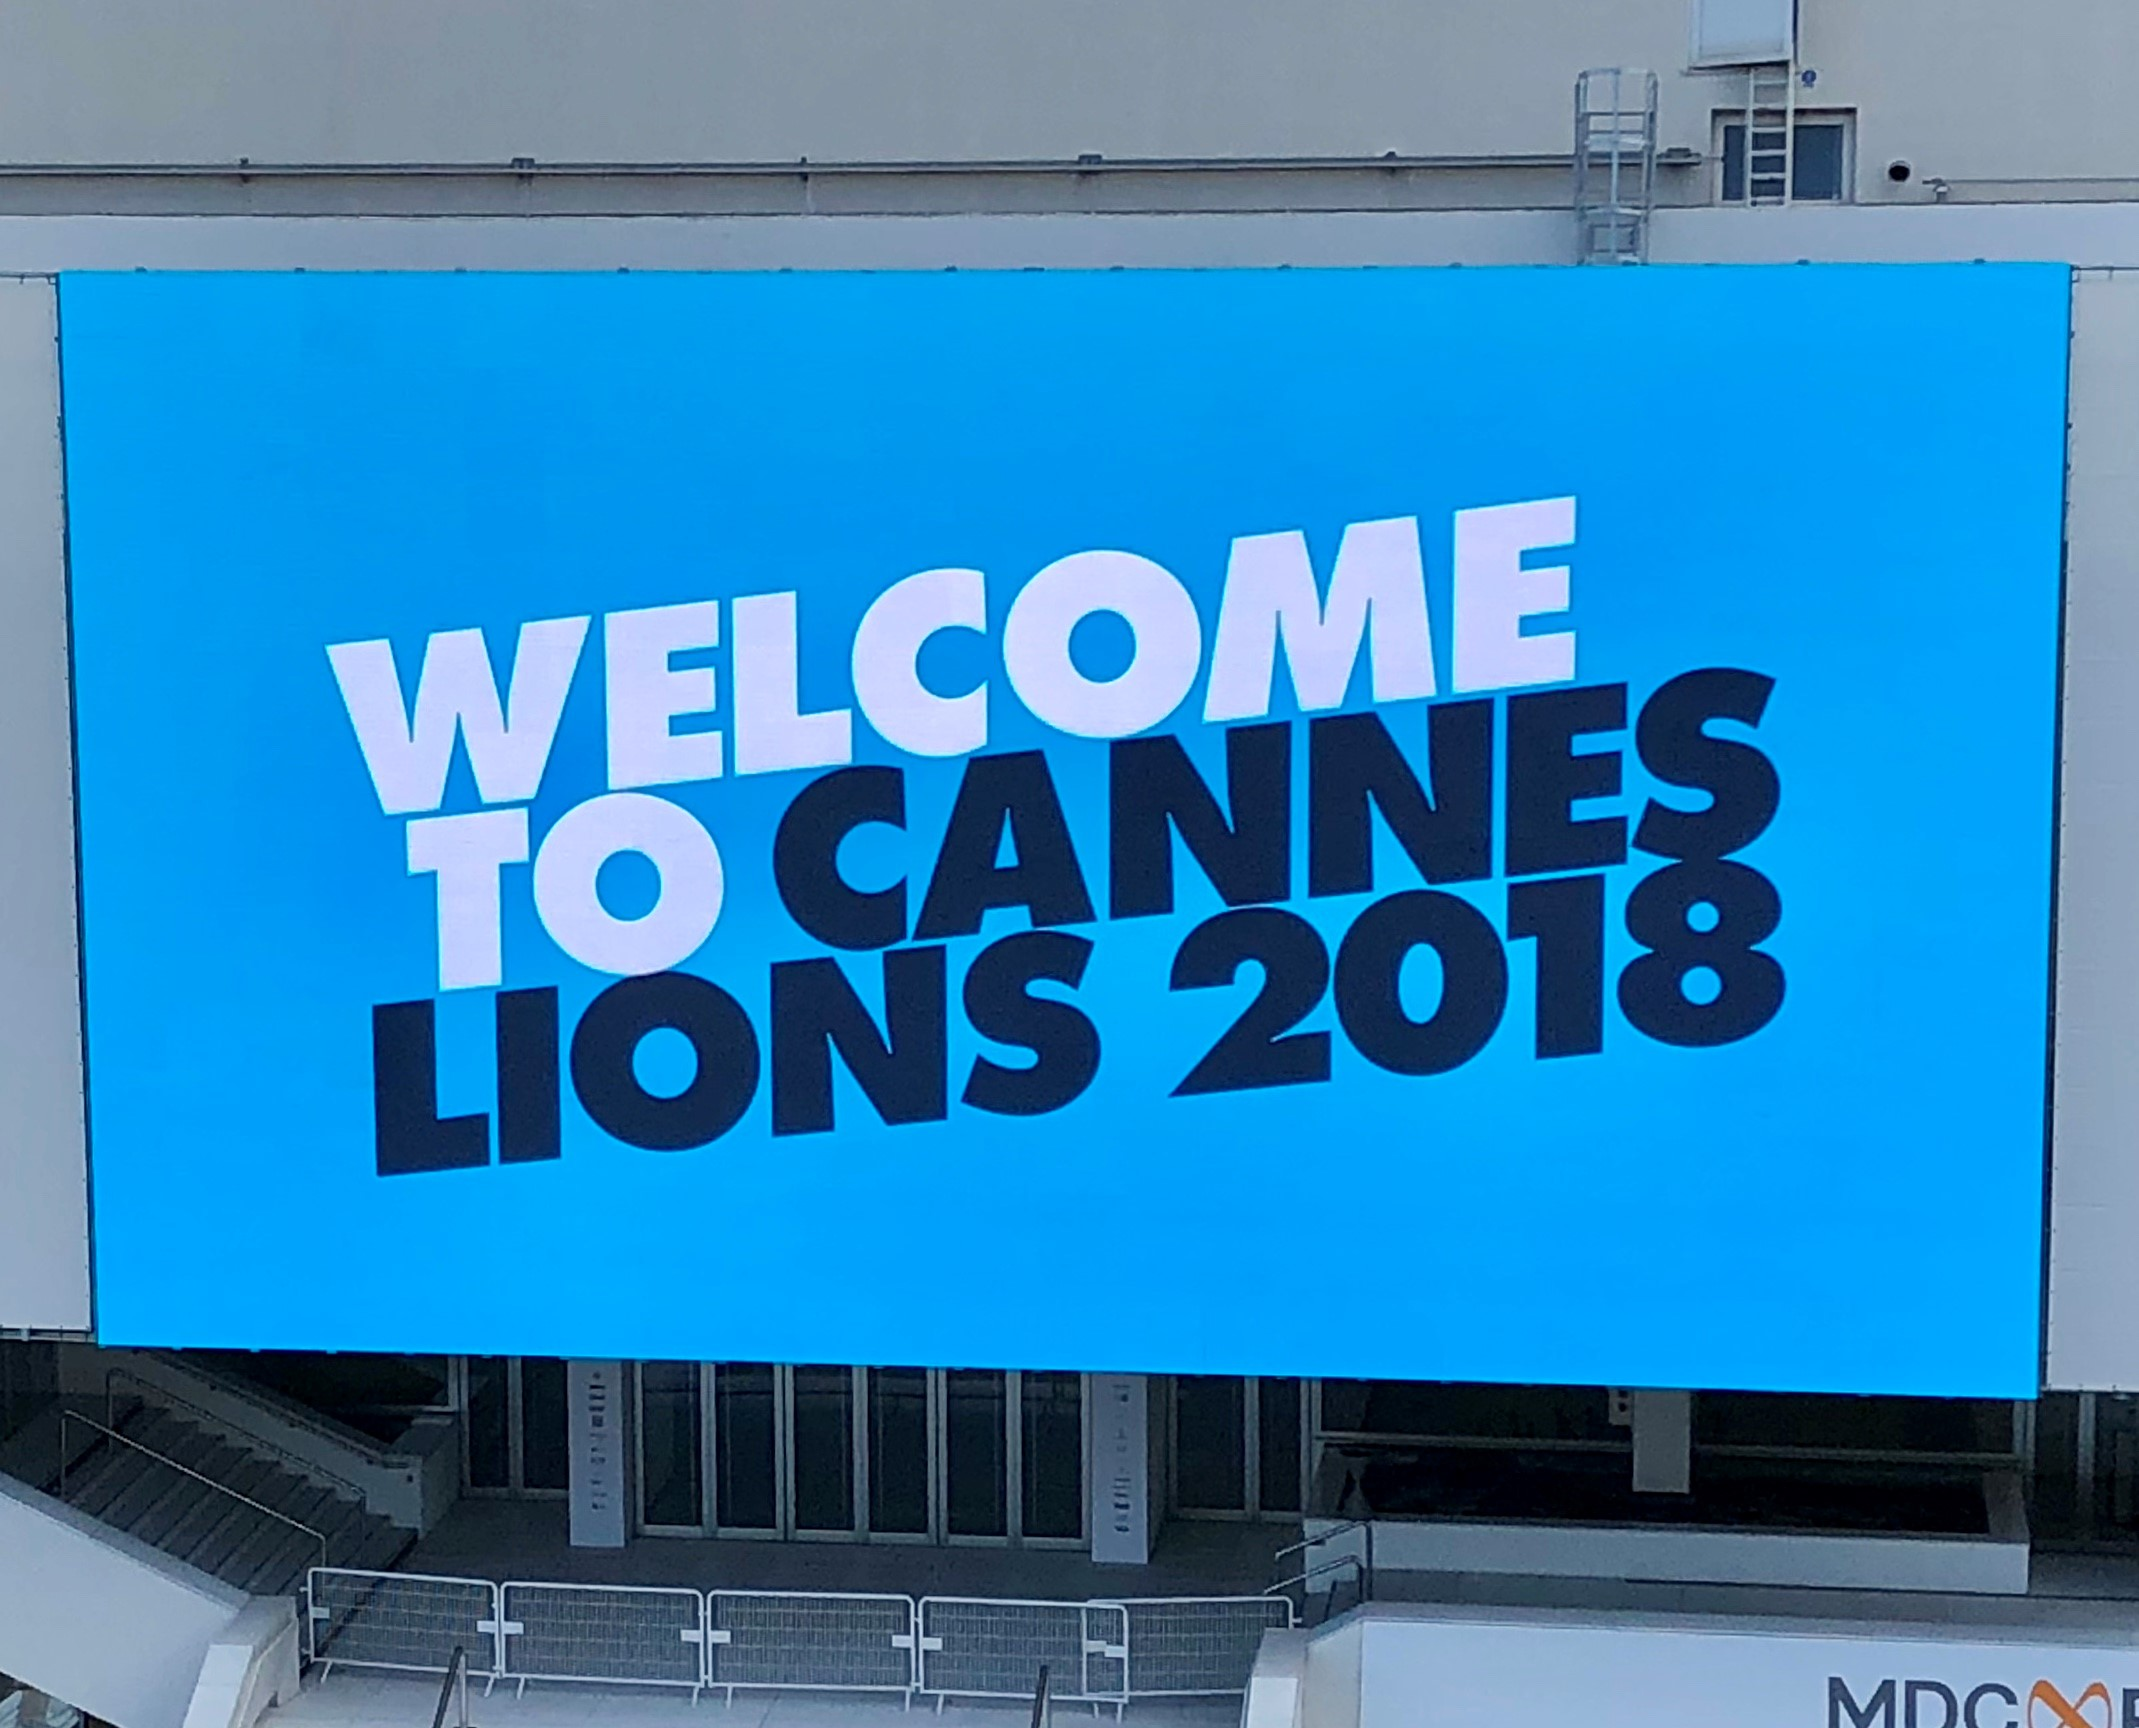 Cannes Lions 2018 Welcome